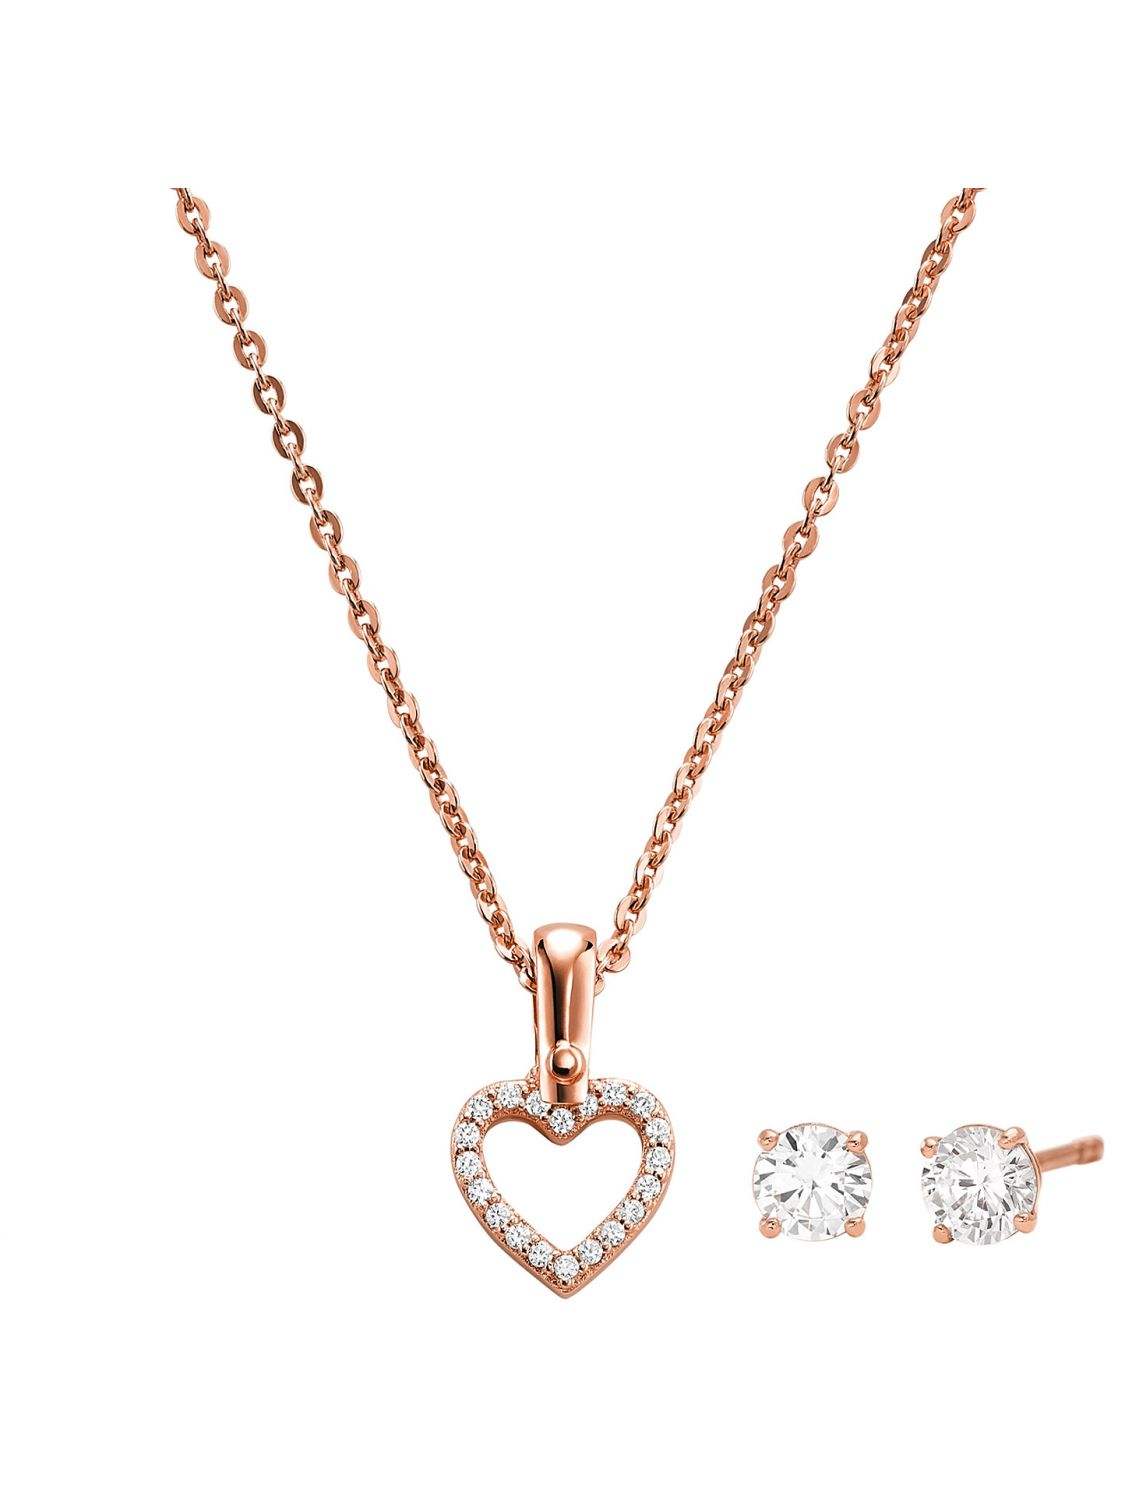 775936ae20a819 Michael Kors MKC1130AN791 Jewellery Set Necklace and Earrings Heart Image 1  ...